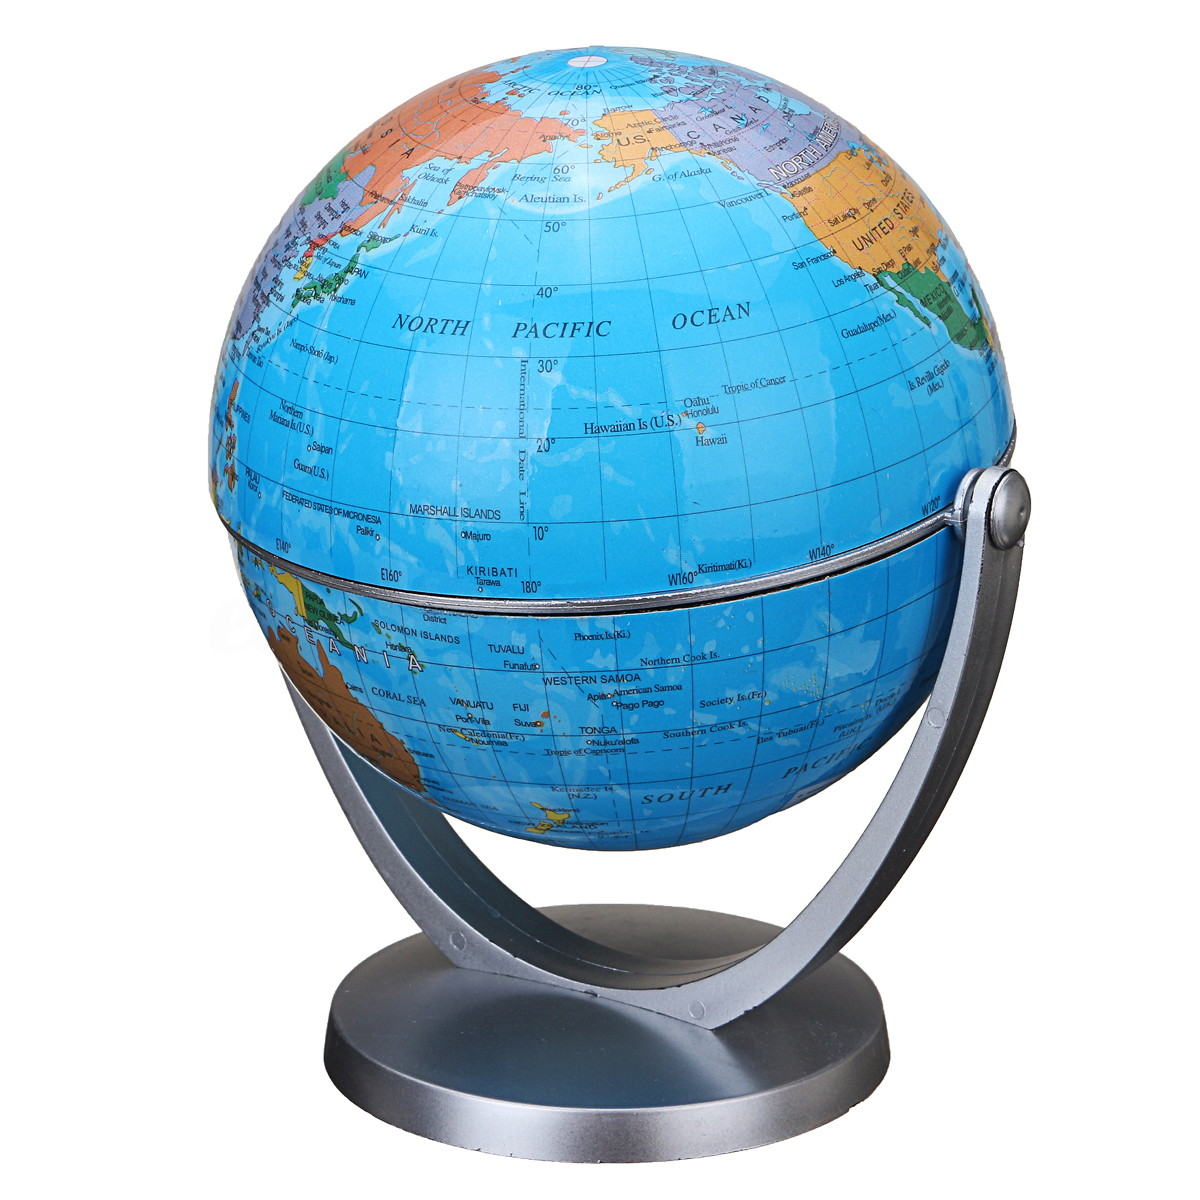 1200x1200 360 Degree Rotating Globes Earth Ocean Globe World Geography Map